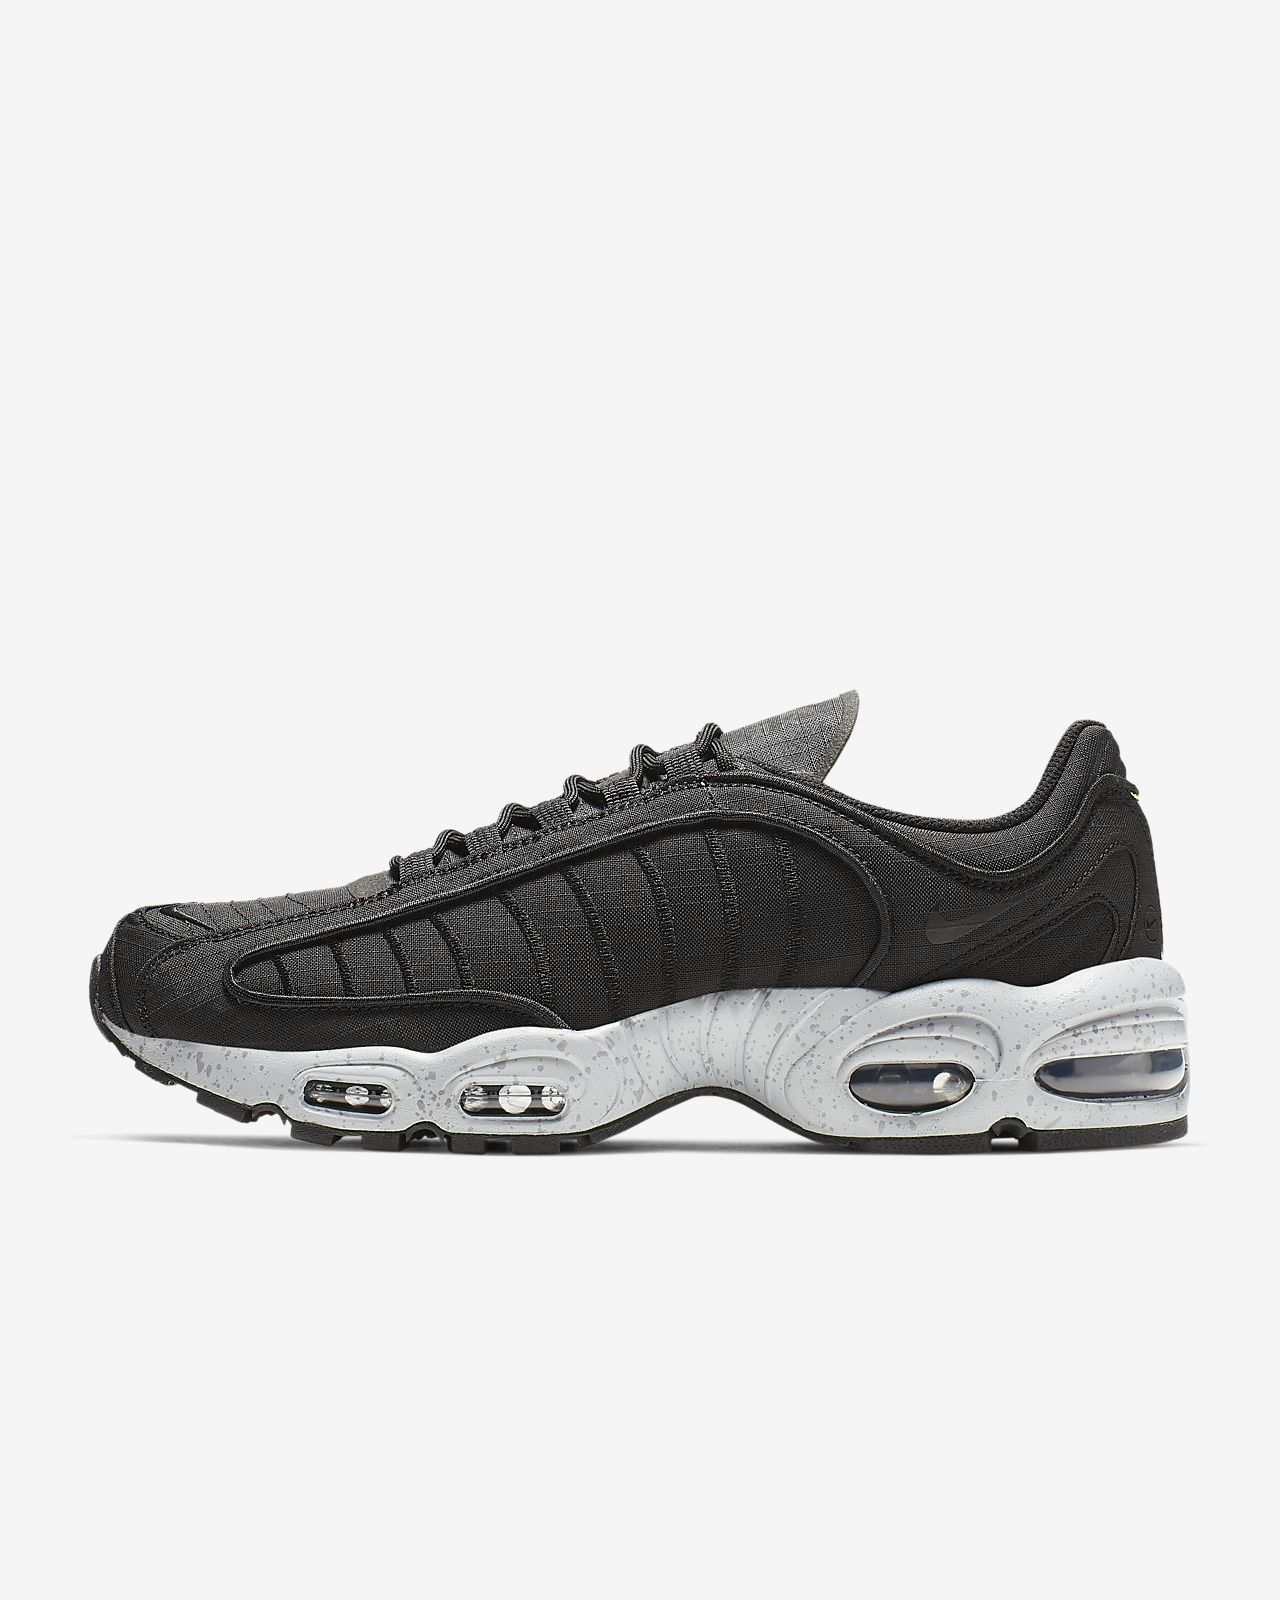 Chaussure Nike Air Max Tailwind IV SP pour Homme